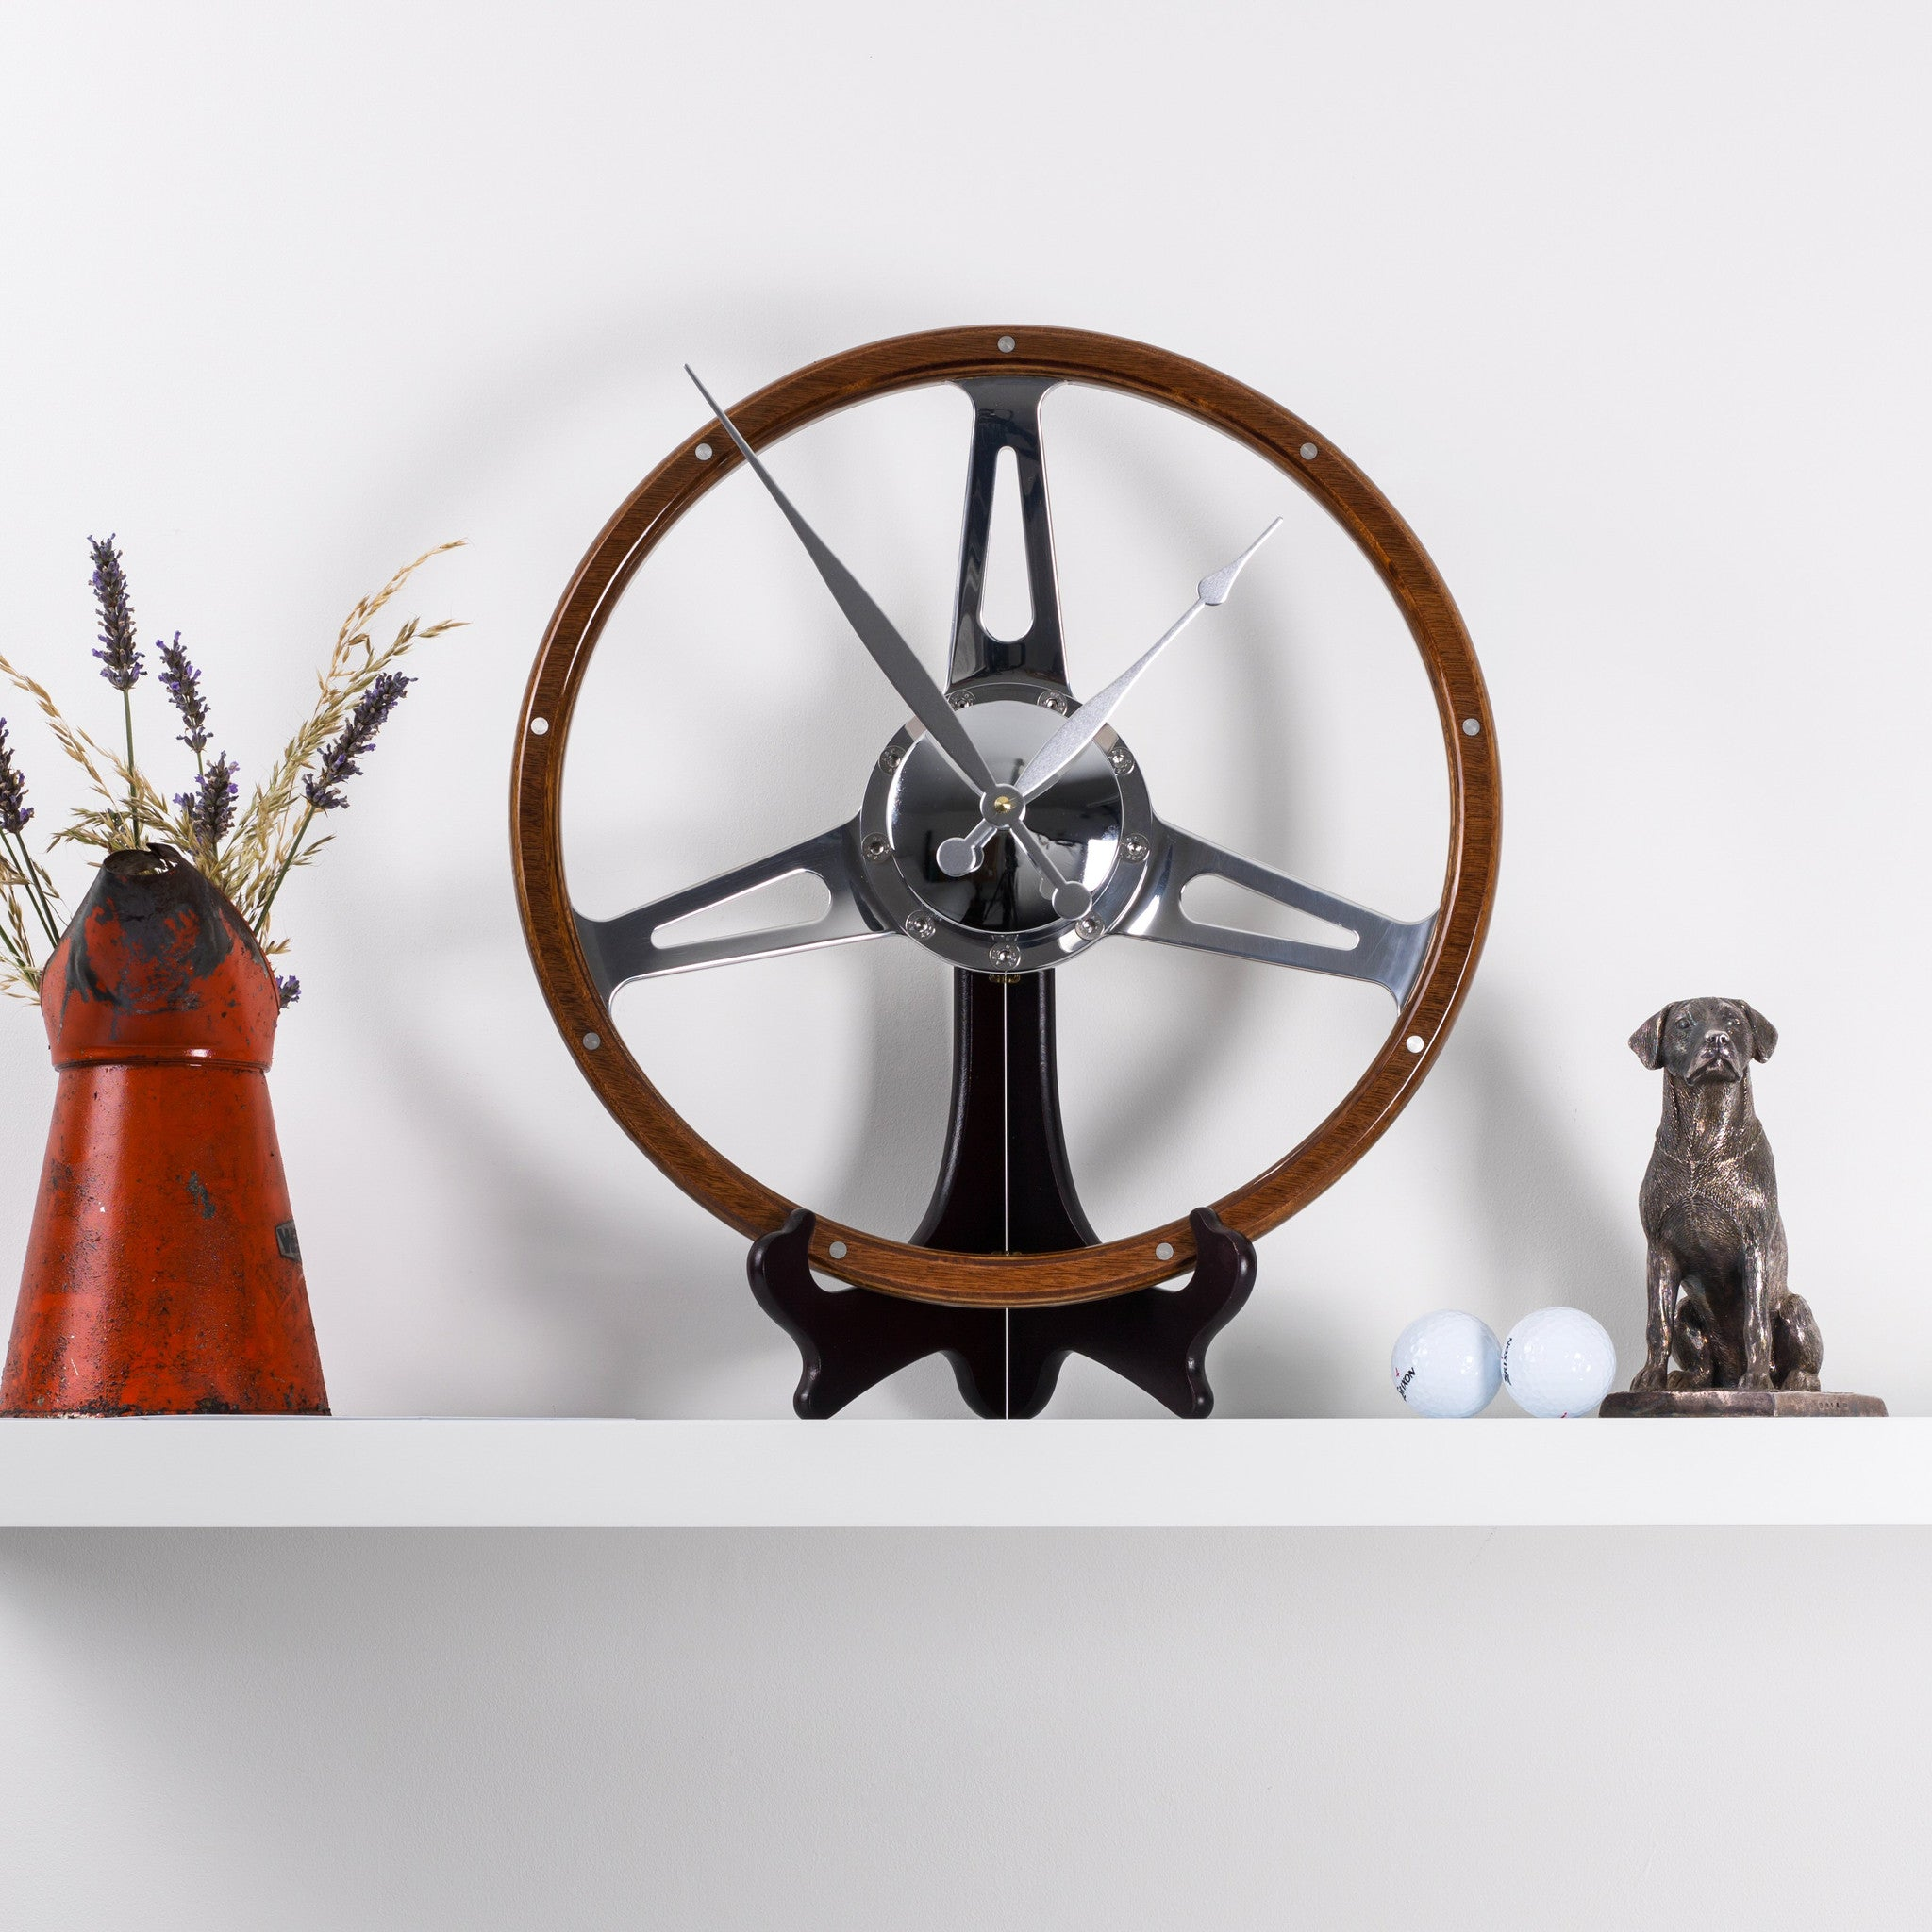 Classic car polished wooden steering wheel desk clock